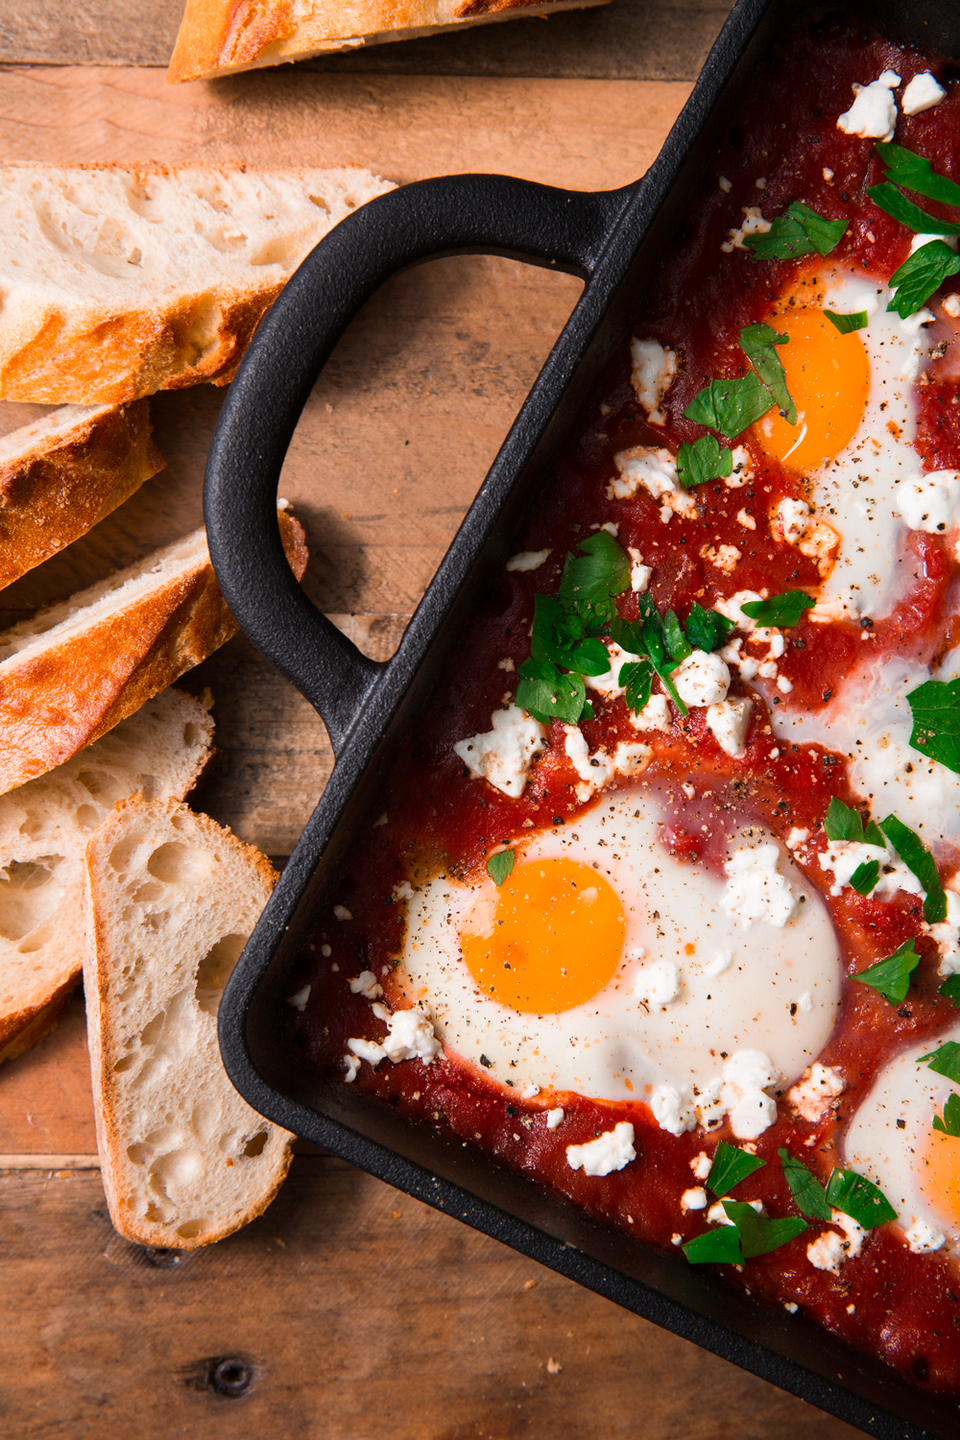 """<p>This might be the most flavorful egg dish you'll ever have.</p><p>Get the recipe from <a href=""""https://www.delish.com/cooking/recipe-ideas/recipes/a52277/shakshuka-with-feta-and-parsley-recipe/"""" rel=""""nofollow noopener"""" target=""""_blank"""" data-ylk=""""slk:Delish"""" class=""""link rapid-noclick-resp"""">Delish</a>.</p>"""